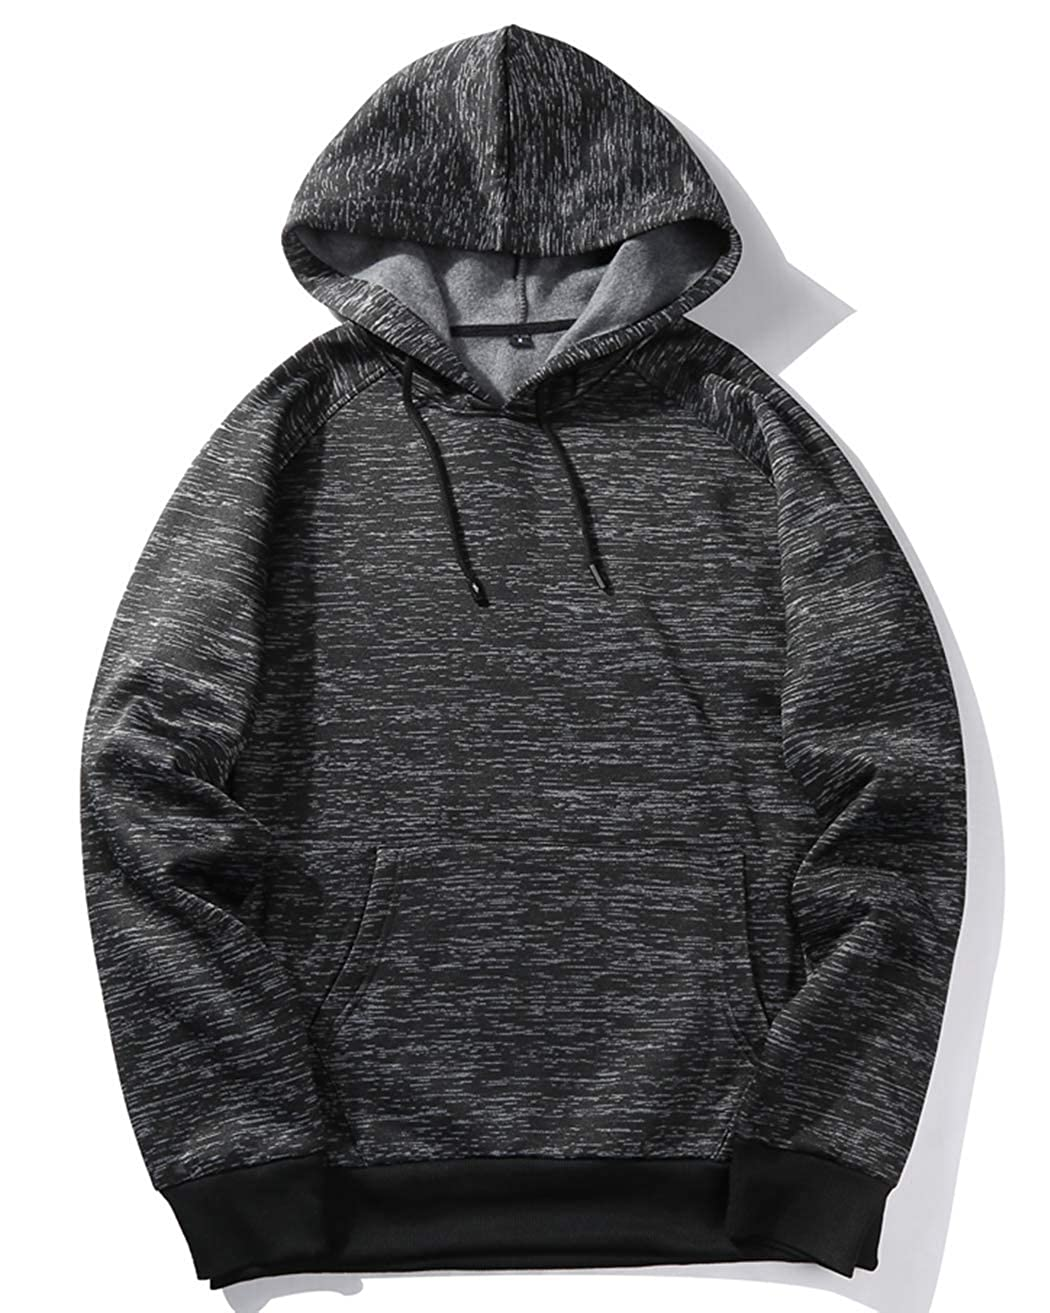 Vcansion SWEATER メンズ B07GHZ56S6 Vcansion Y20-black メンズ Small SWEATER Small|Y20-black, 車力村:a9e51be7 --- kutter.pl